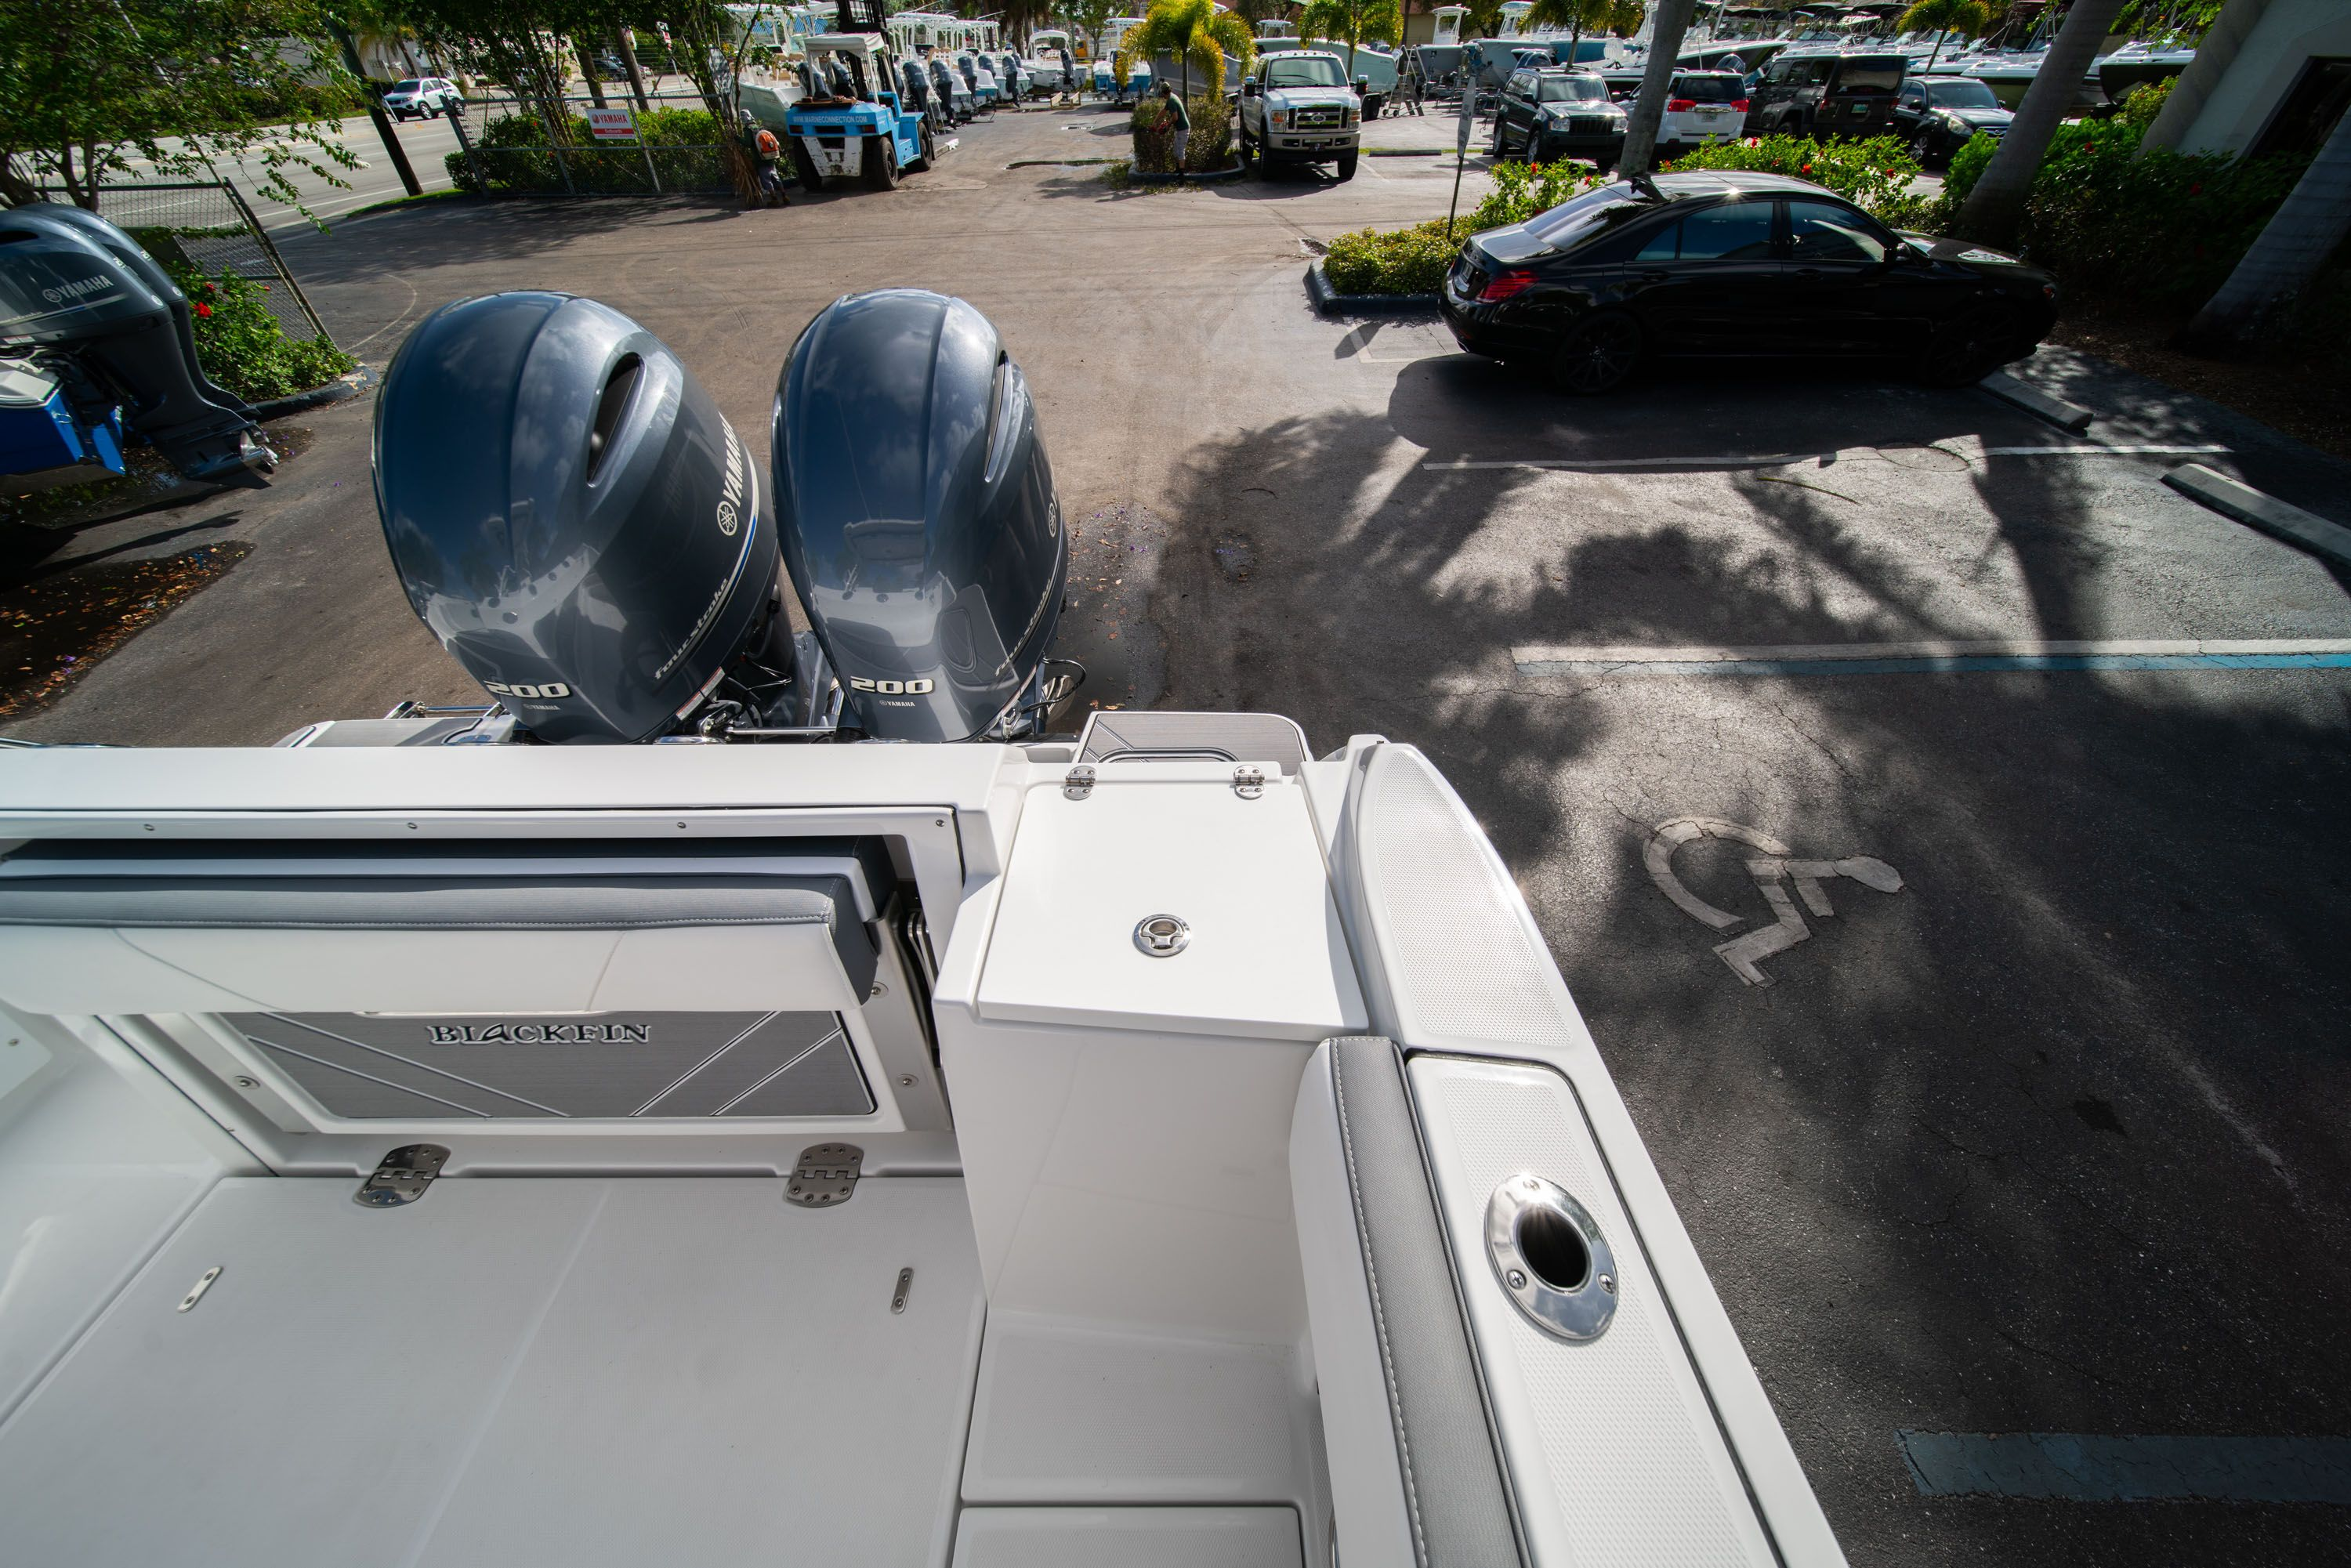 Thumbnail 23 for New 2020 Blackfin 242DC Dual Console boat for sale in West Palm Beach, FL